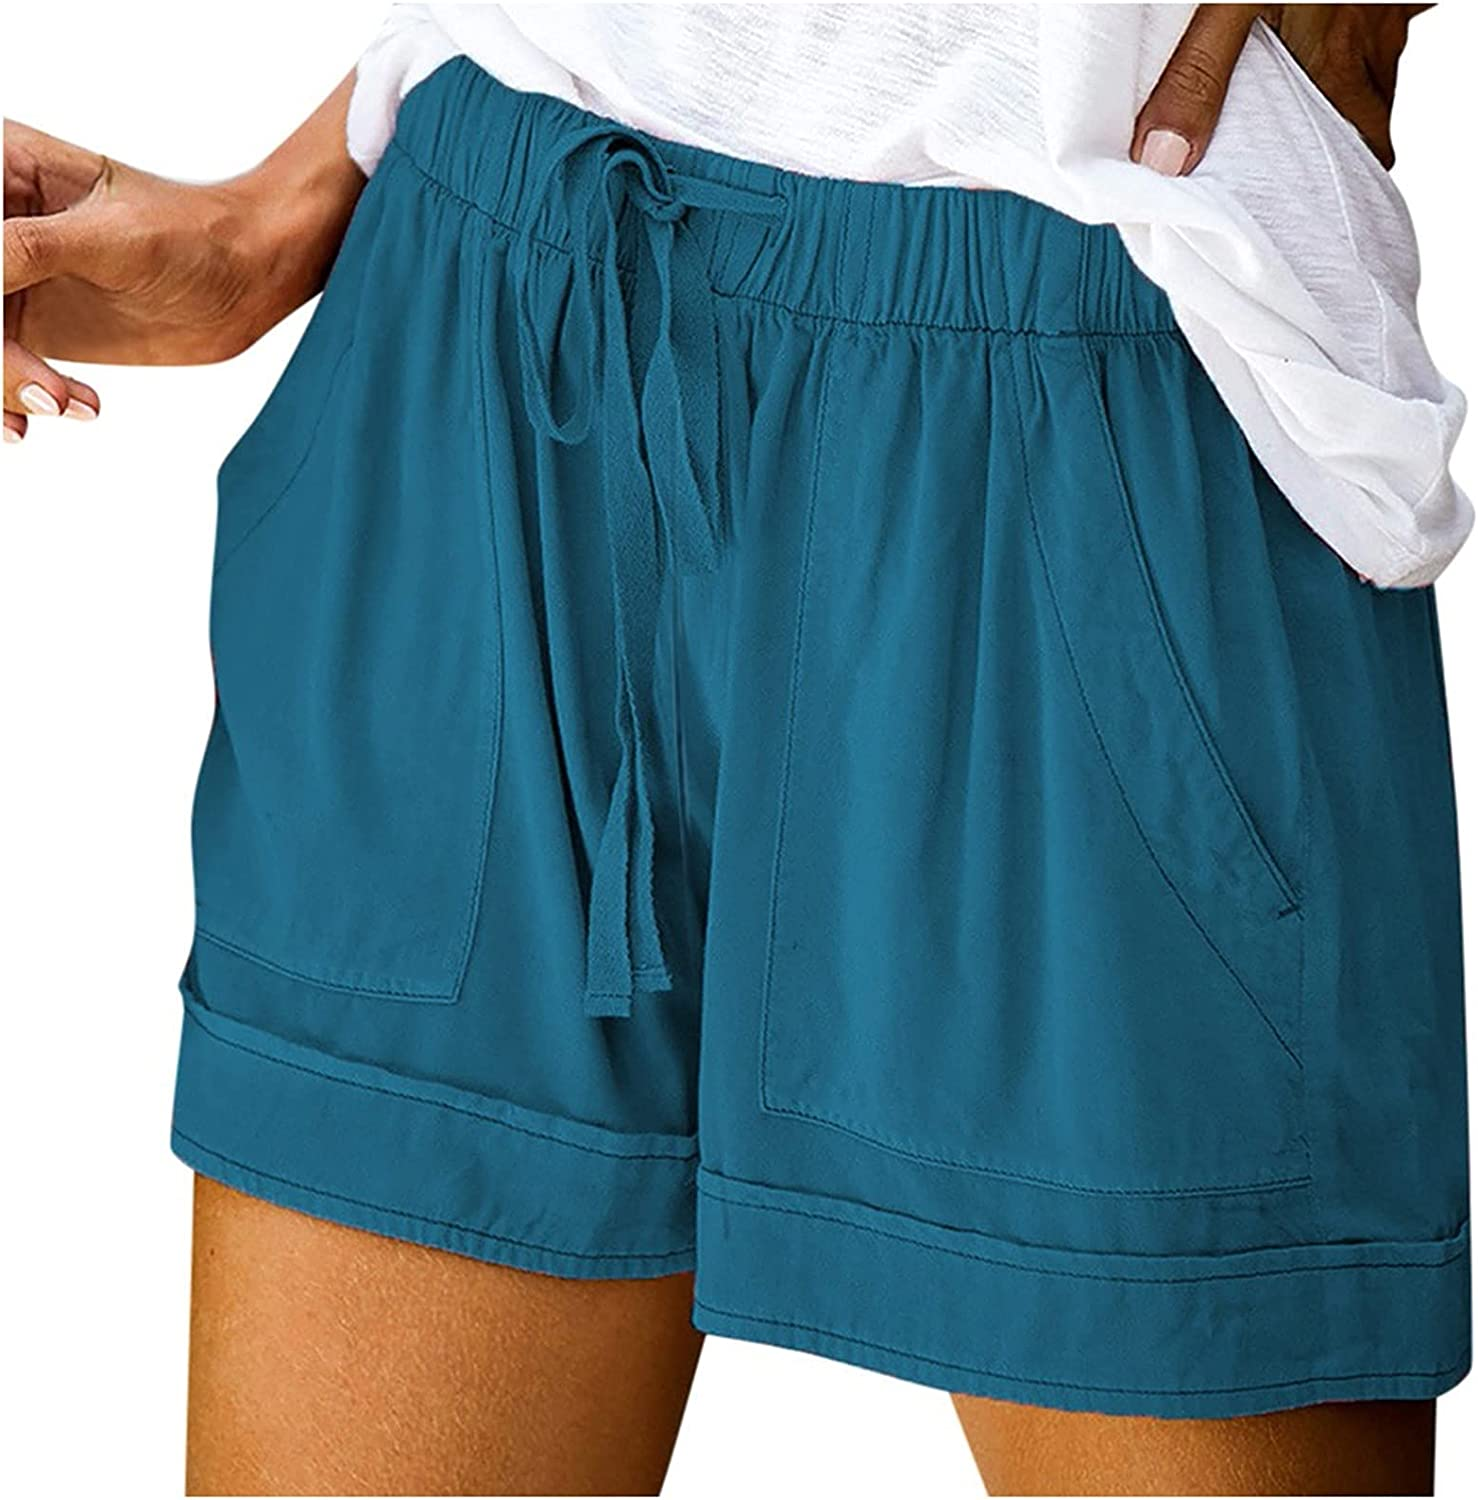 UBST Womens Summer Casual Drawstring Elastic Waist Comfy Lounge Shorts Pure Color Athletic Workout Shorts with Pockets